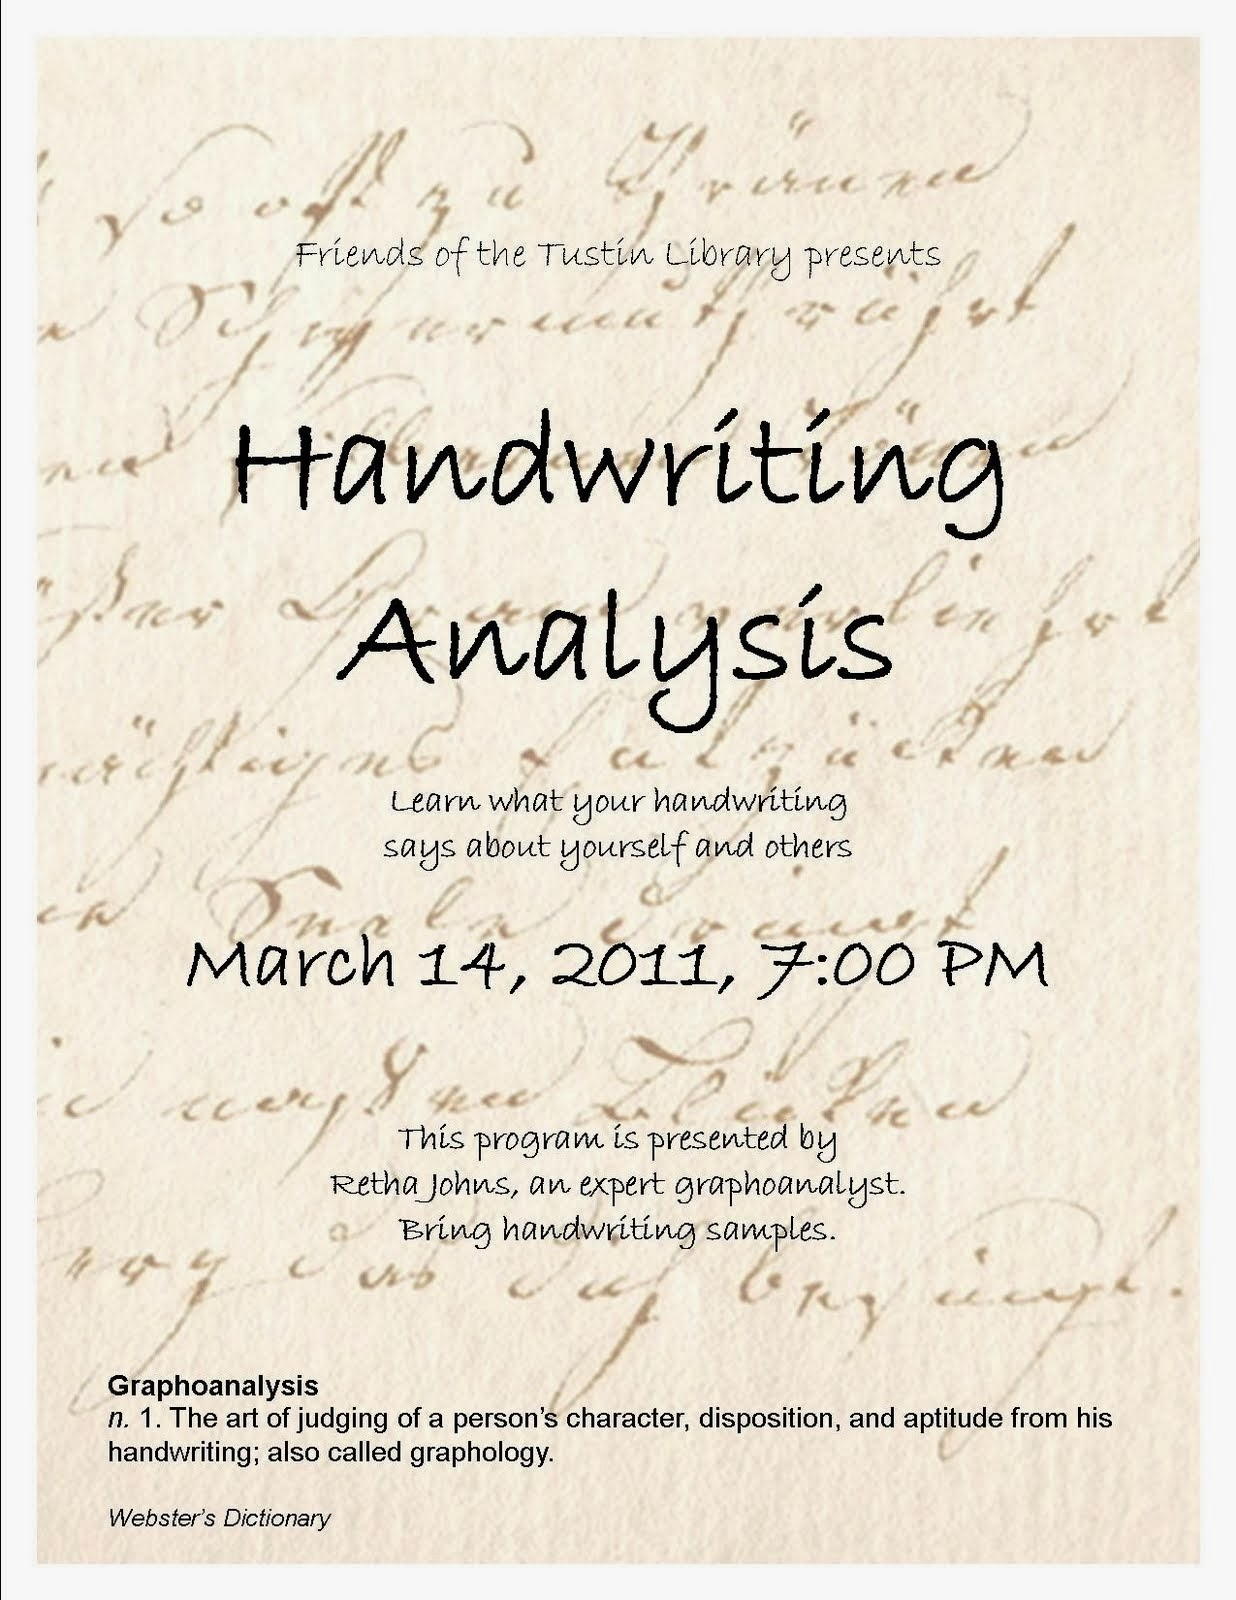 handwriting analysis Graphology (or graphoanalysis, but not graphanalysis) is the analysis of the physical characteristics and patterns of handwriting claiming to be able to identify the writer, indicating psychological state at the time of writing, or evaluating personality characteristics.